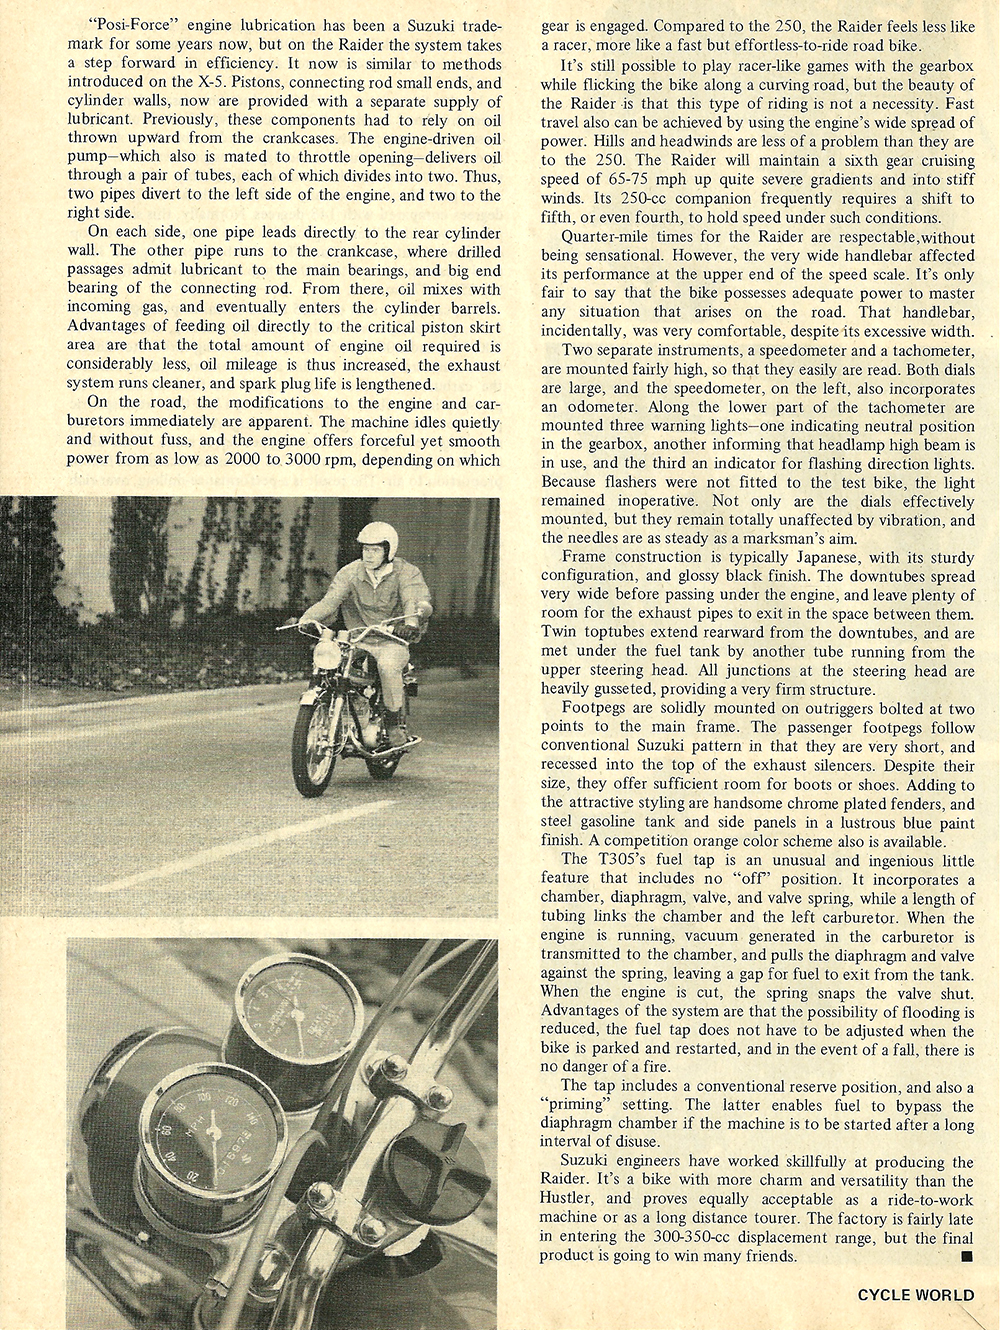 1968 Suzuki 305 Raider road test 03.jpg